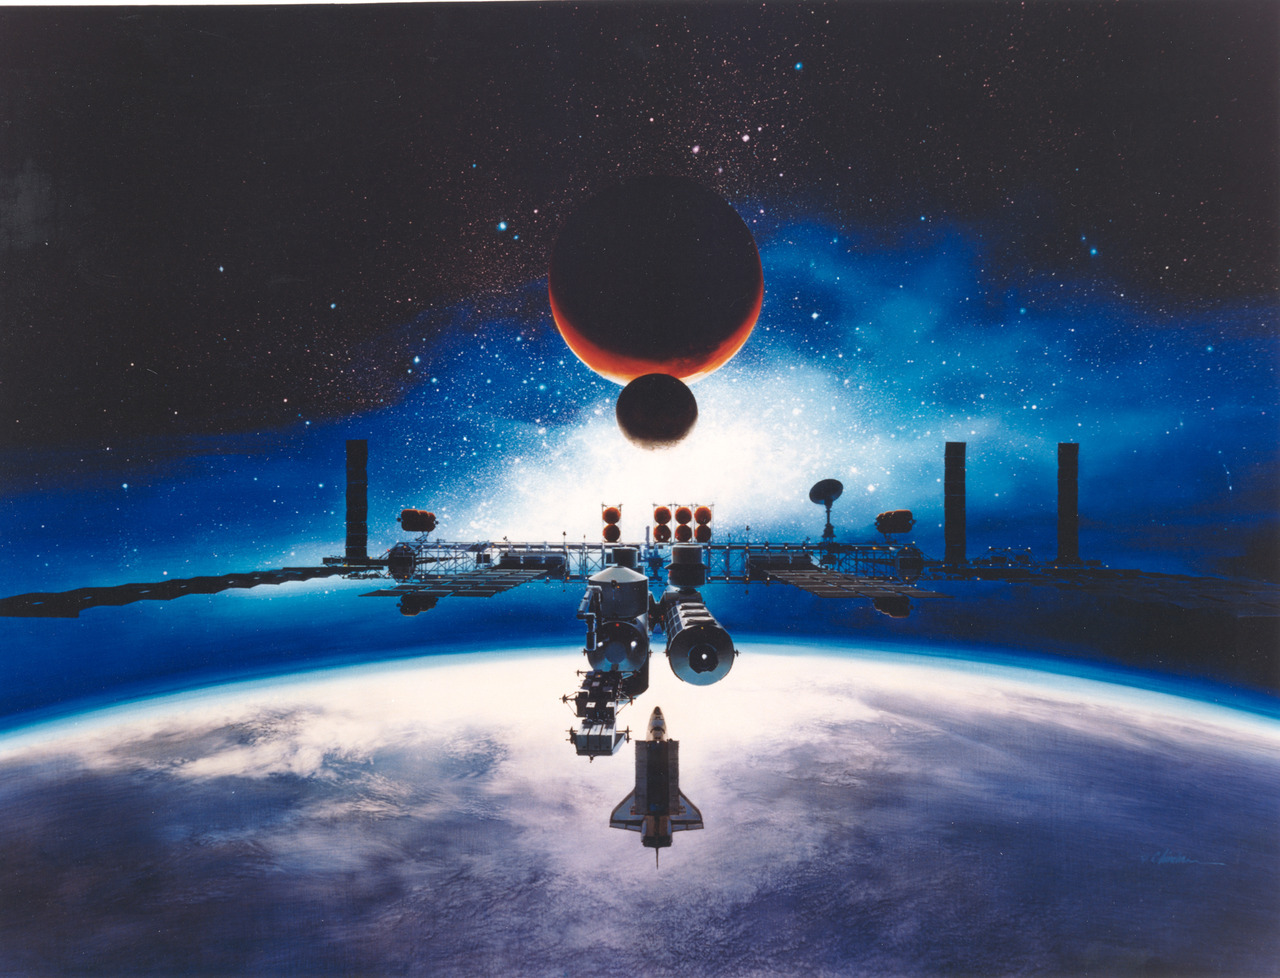 Alan Chinchar's 1991 rendition of the Space Station Freedom in orbit.